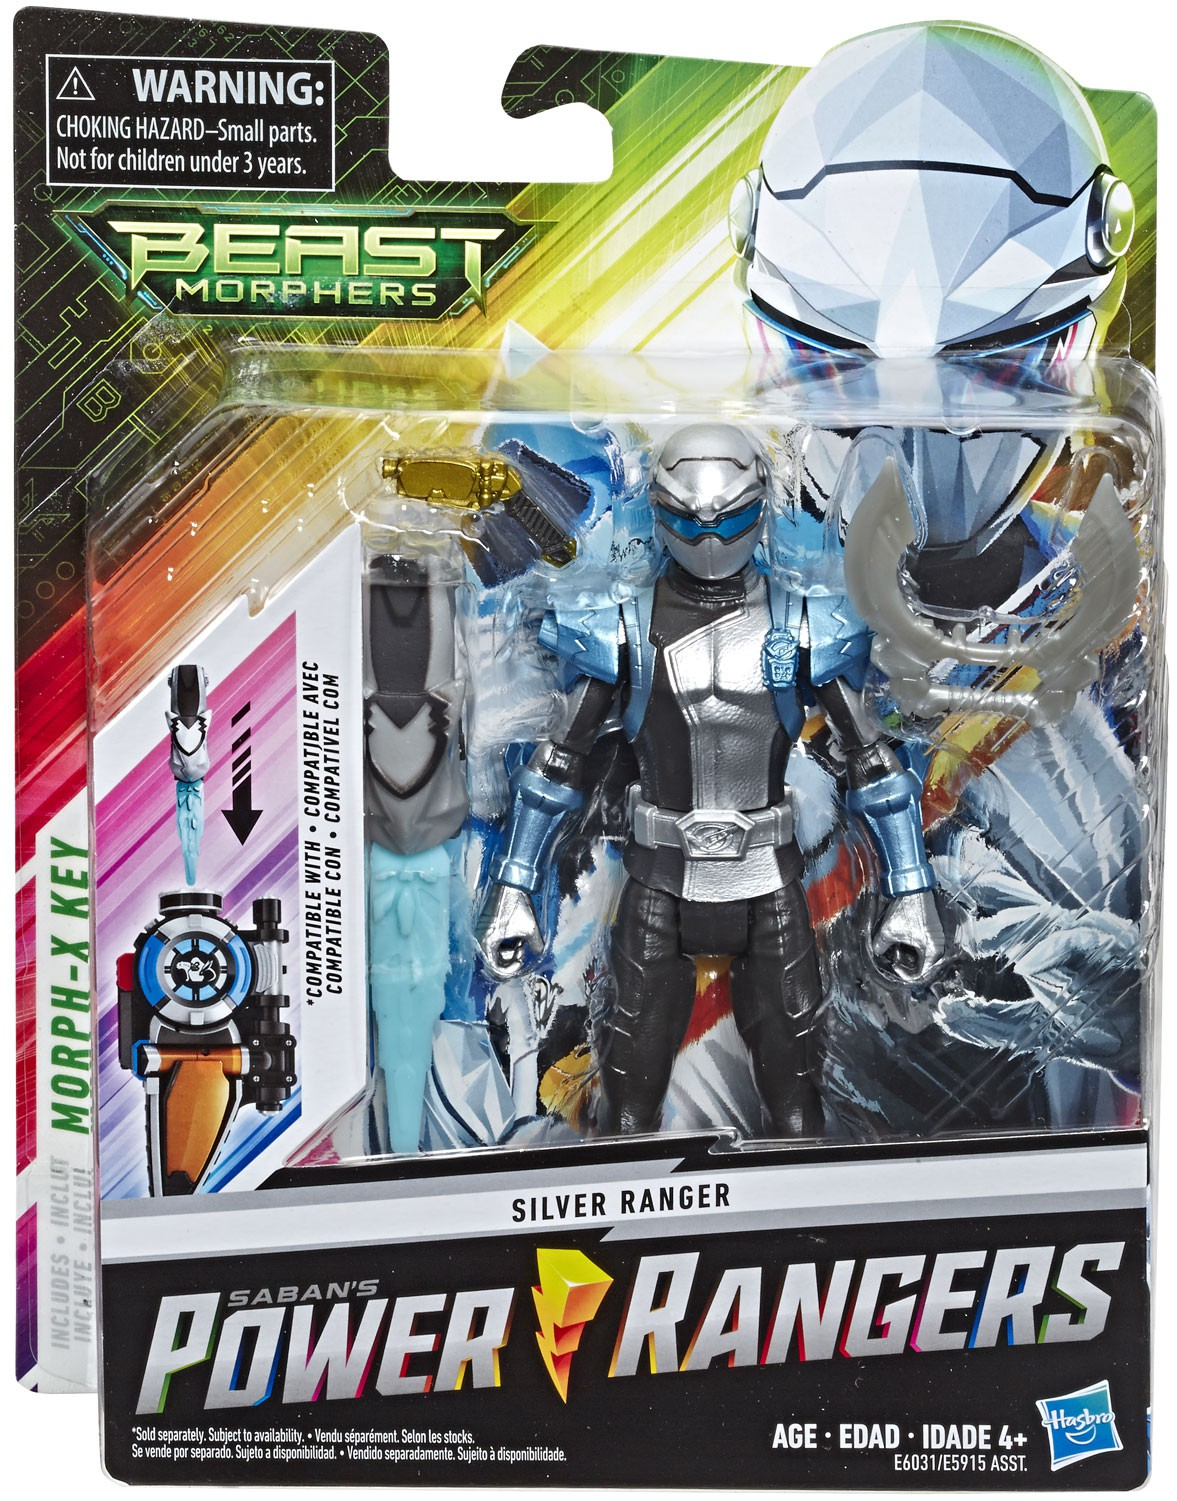 power rangers beast morphers silver ranger 6 inch action figure toy walmart com walmart com power rangers beast morphers silver ranger 6 inch action figure toy walmart com